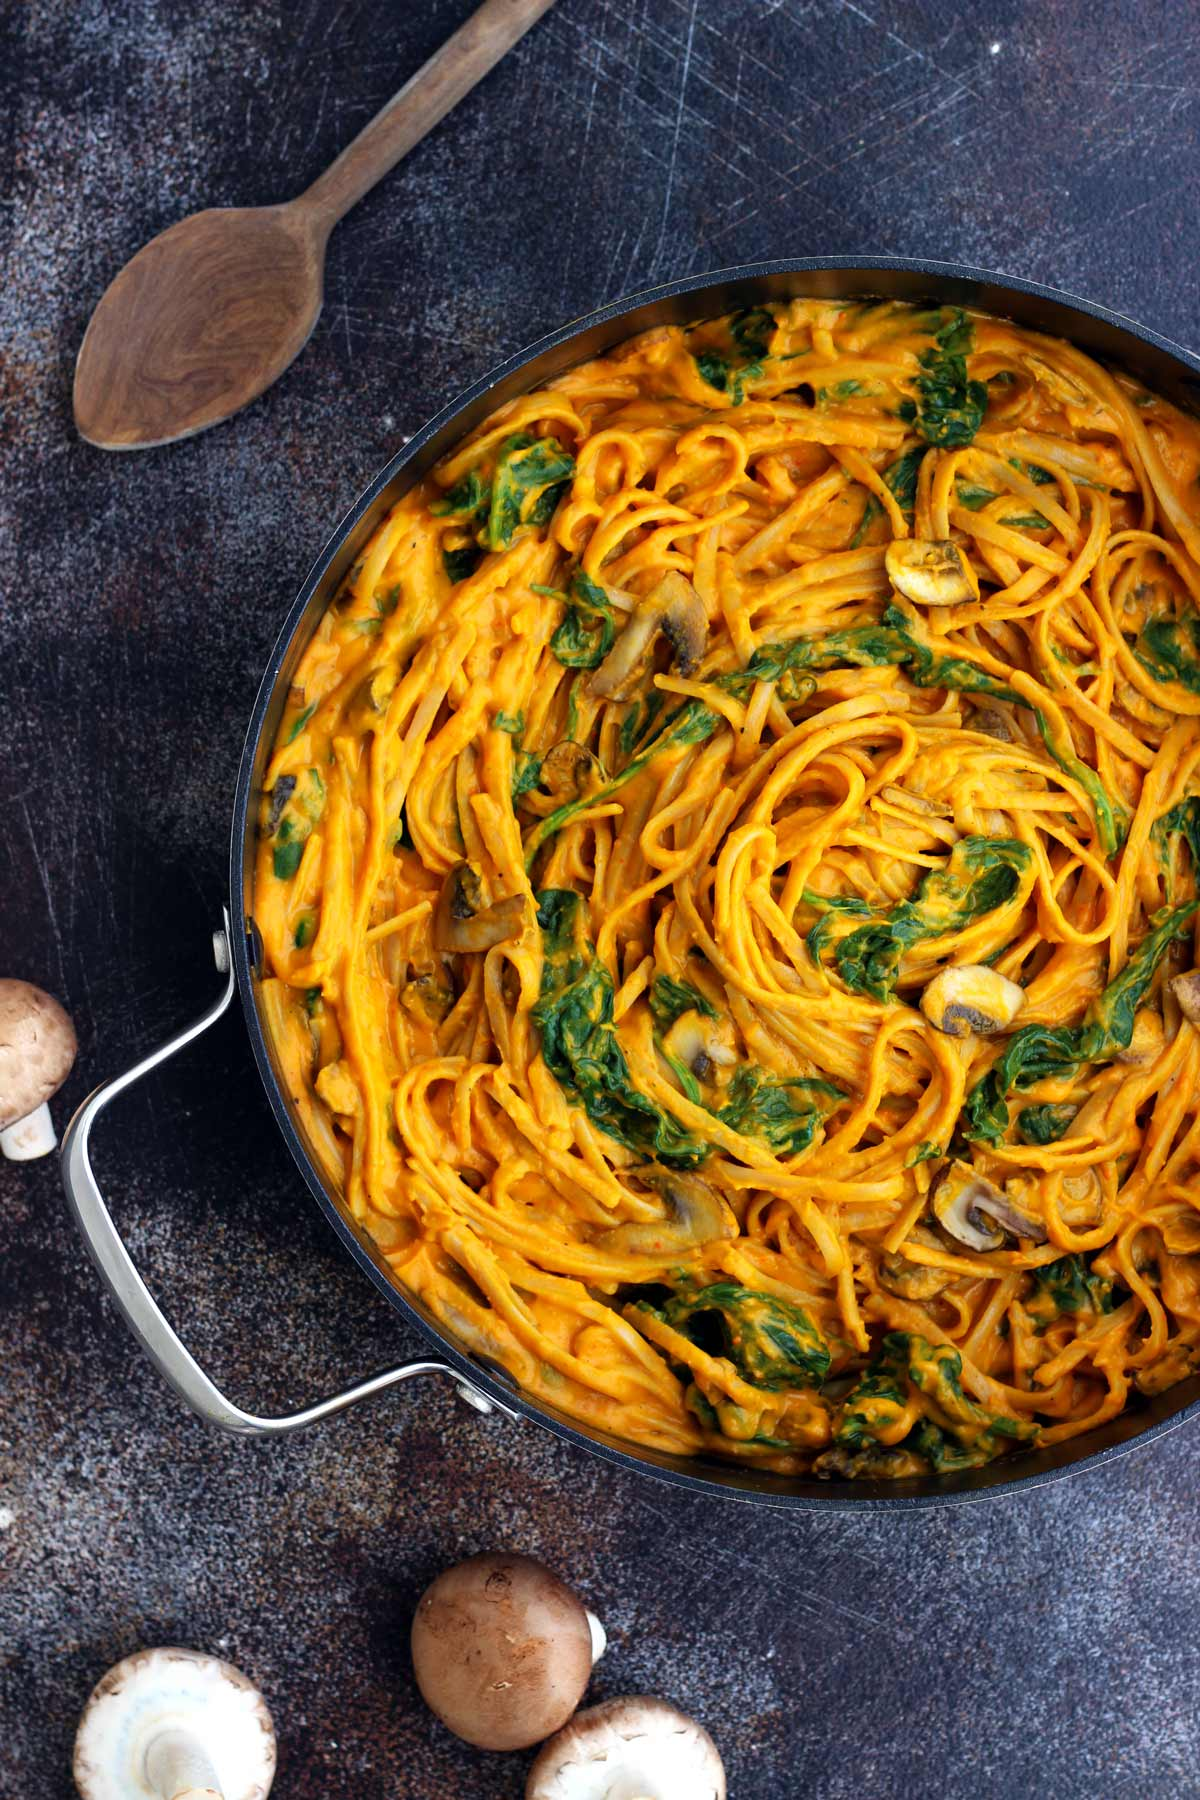 Fall Pasta Dinner: Healthy Pumpkin Pasta With Spinach And Mushrooms • Happy